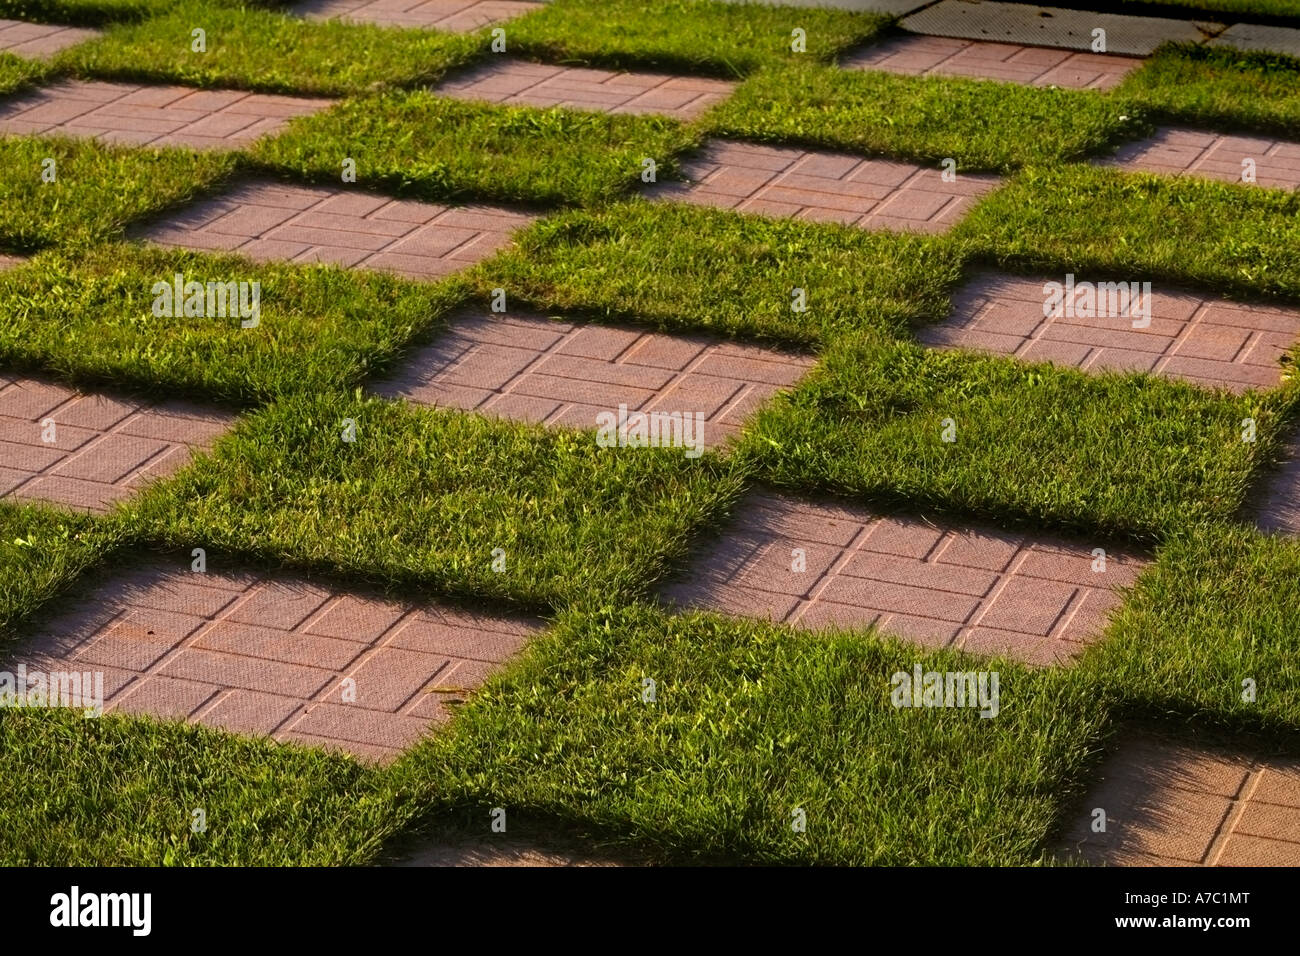 A Checkerboard In A Garden Made Up Of Patio Stones And Grass.